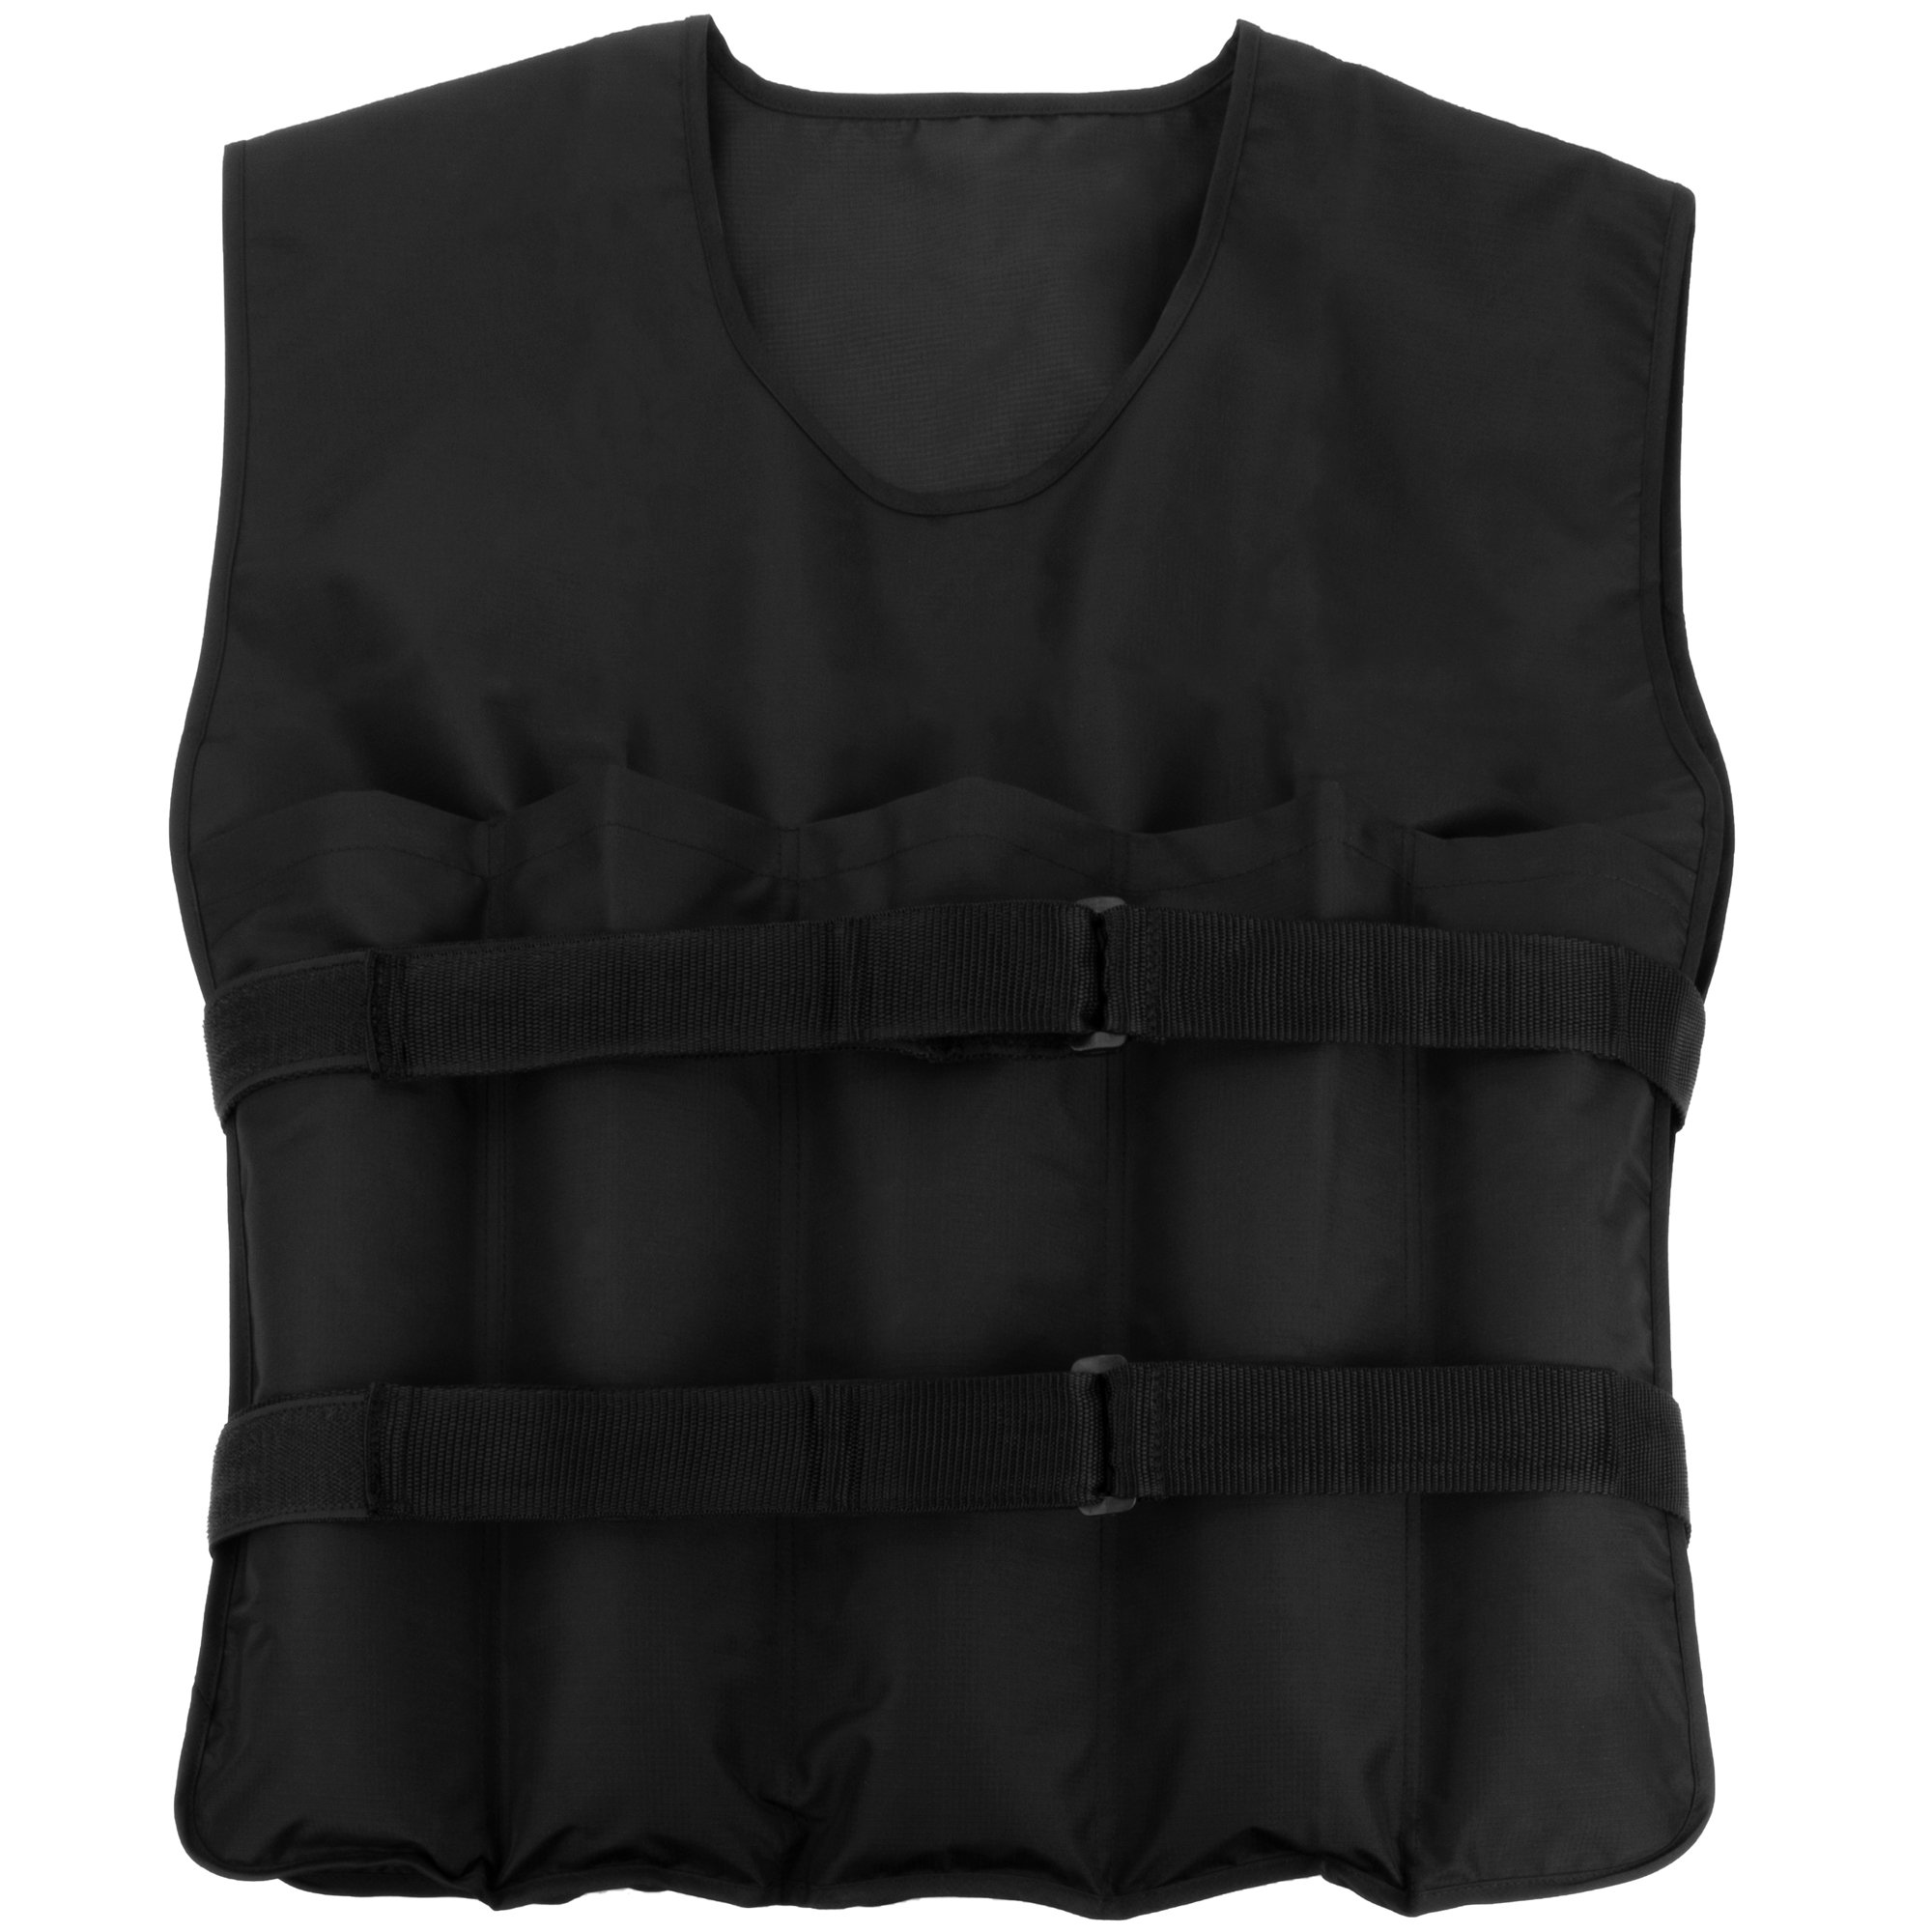 Crown Sporting Goods 9 kg (19.8 lbs) Strength Weighted Vest - Adjustable Weight Jacket for Resistance Training with 10 Additional 1 lb. Weights by Crown Sporting Goods